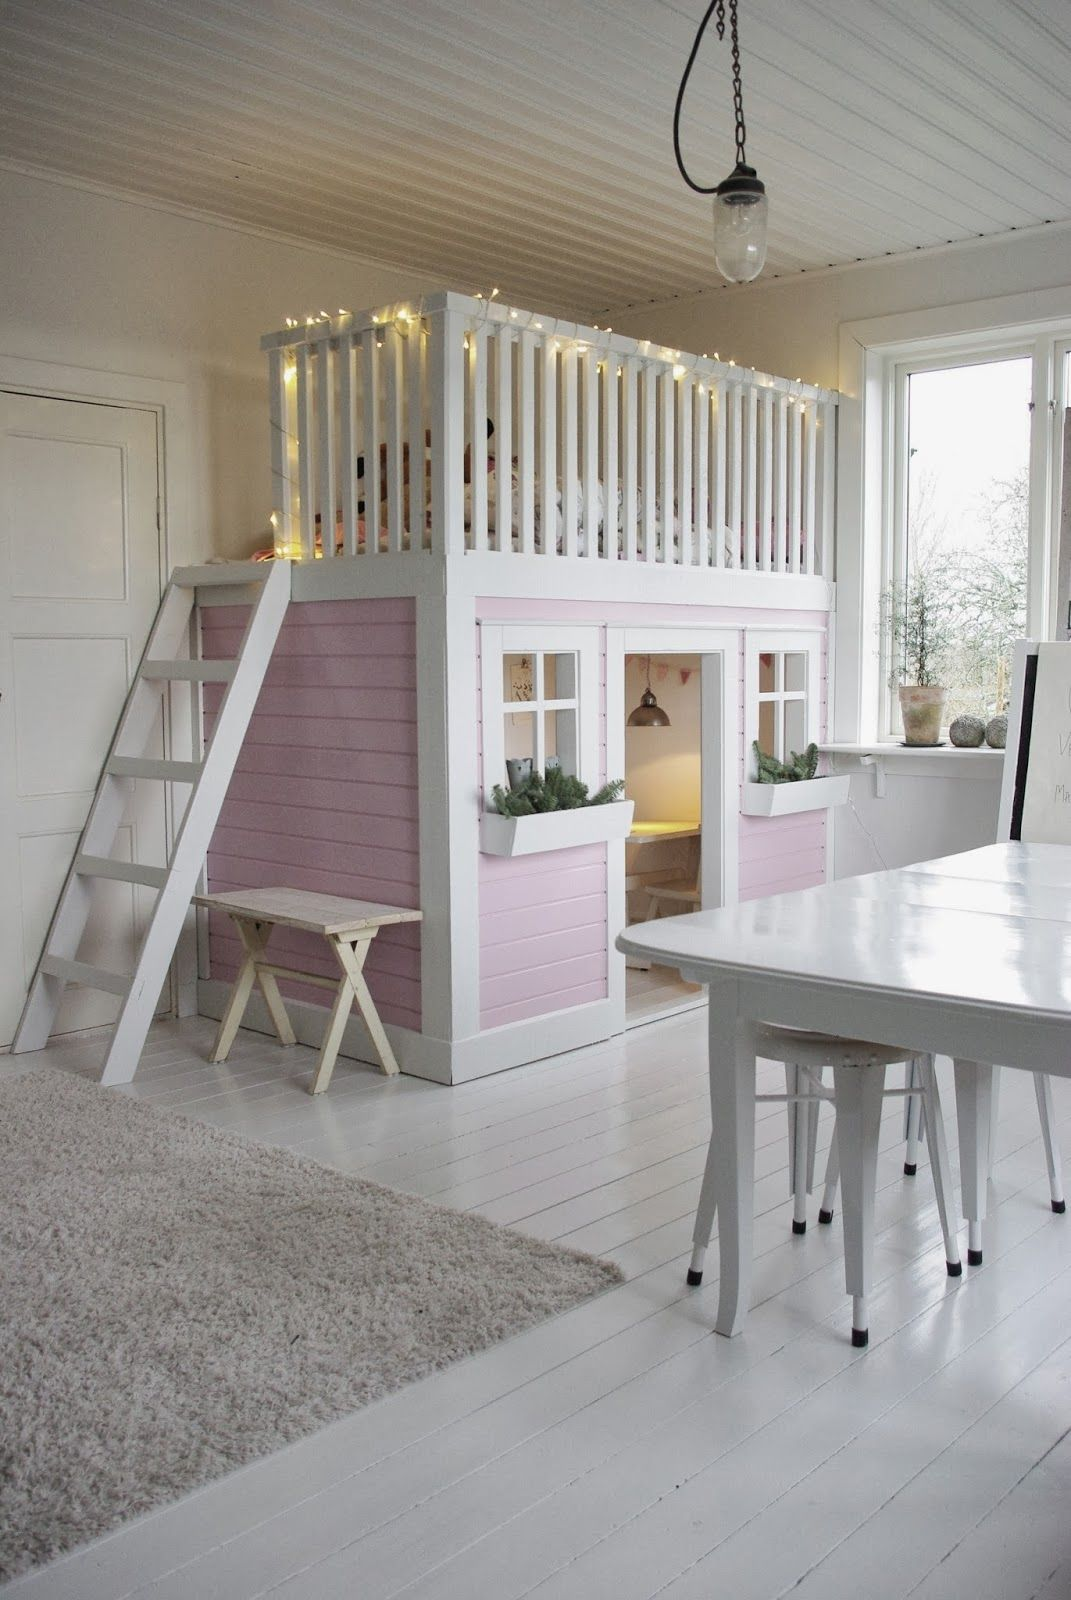 Loft bed with slide and storage  Now this would be a dream bedroomplayroom for a special little one